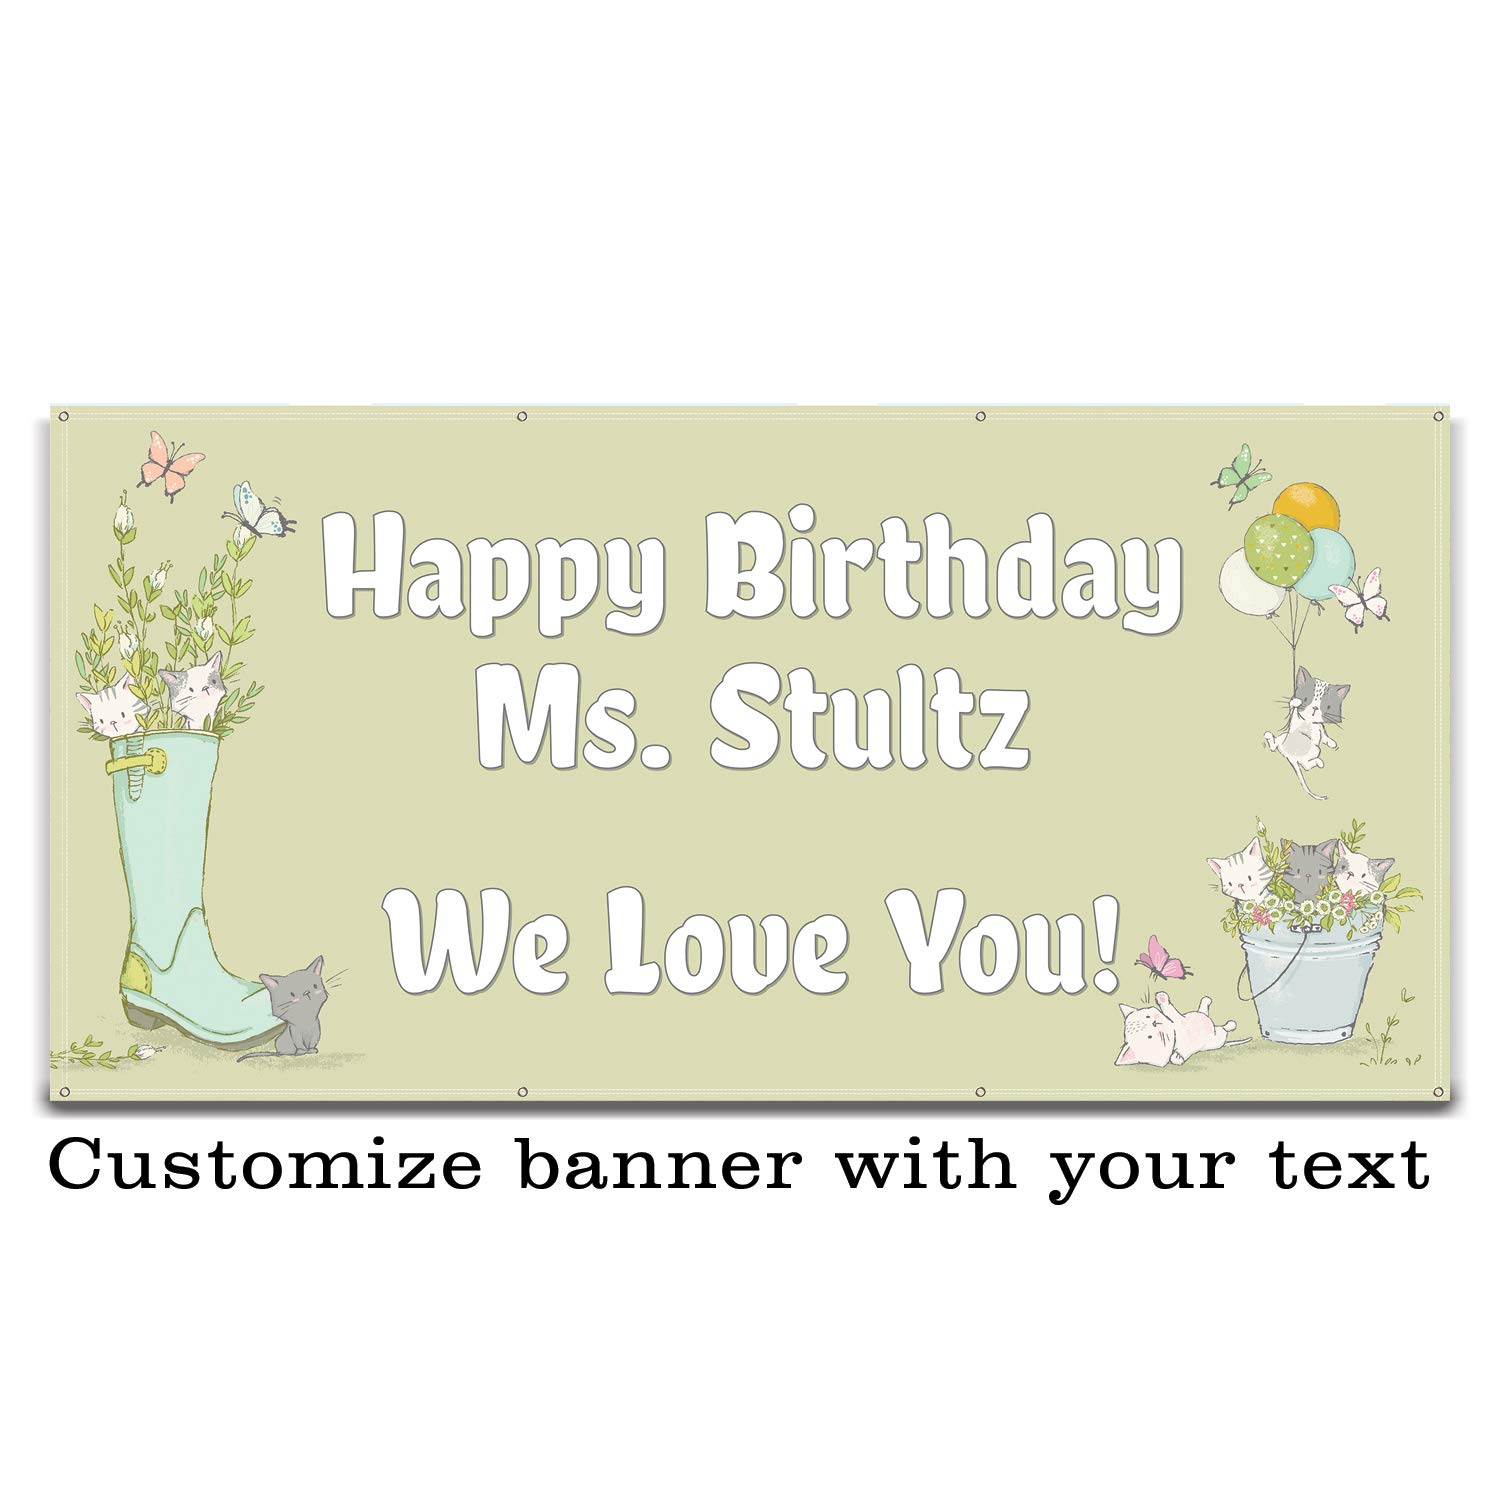 Buttonsmith Baby Animals Party Vinyl Banner 6'x3' - Indoor/Outdoor - Hemmed and Grommeted - Designed, Printed, and Assembled in USA